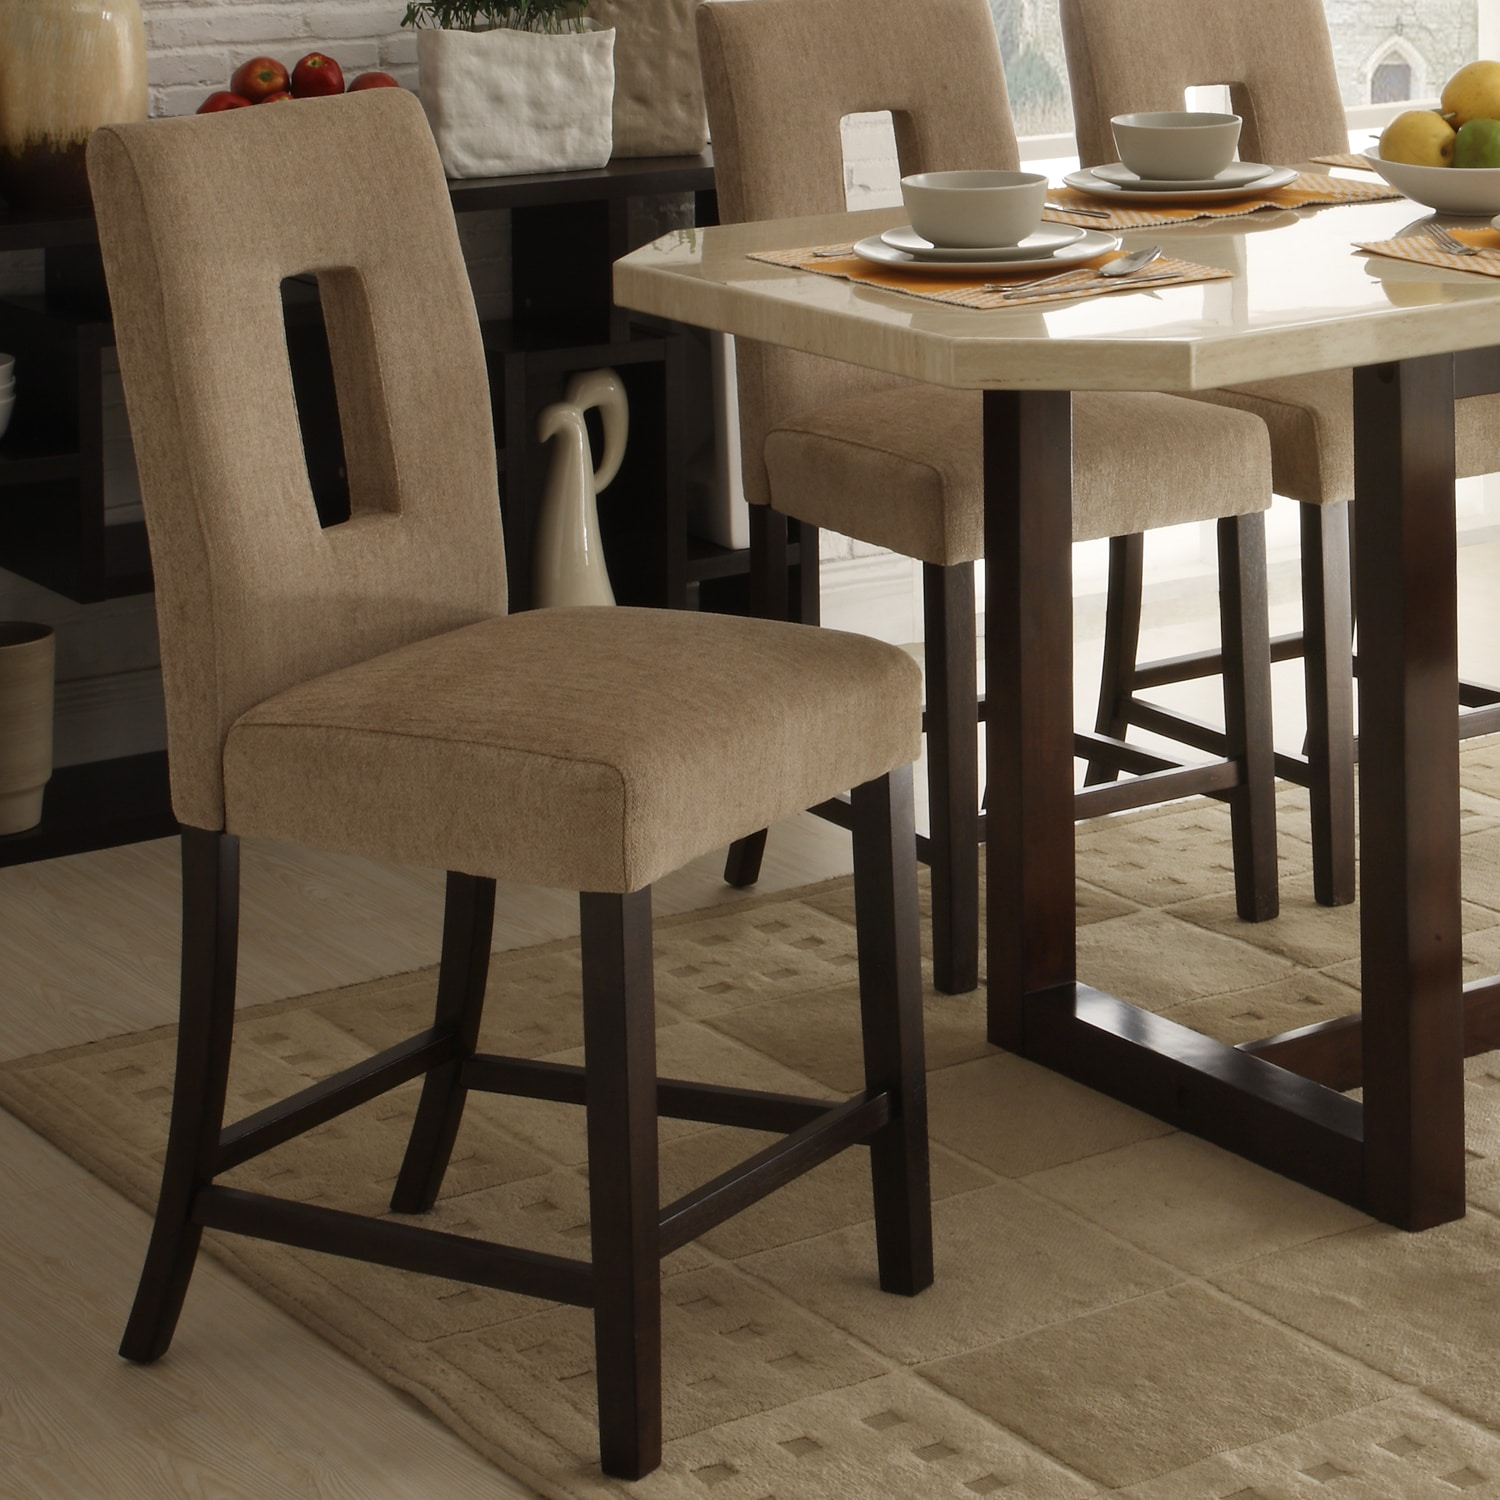 Countertop Height For Bar Stools : ... Back Grey Upholstered Counter Height Parsons Dining Stools (Set of 2